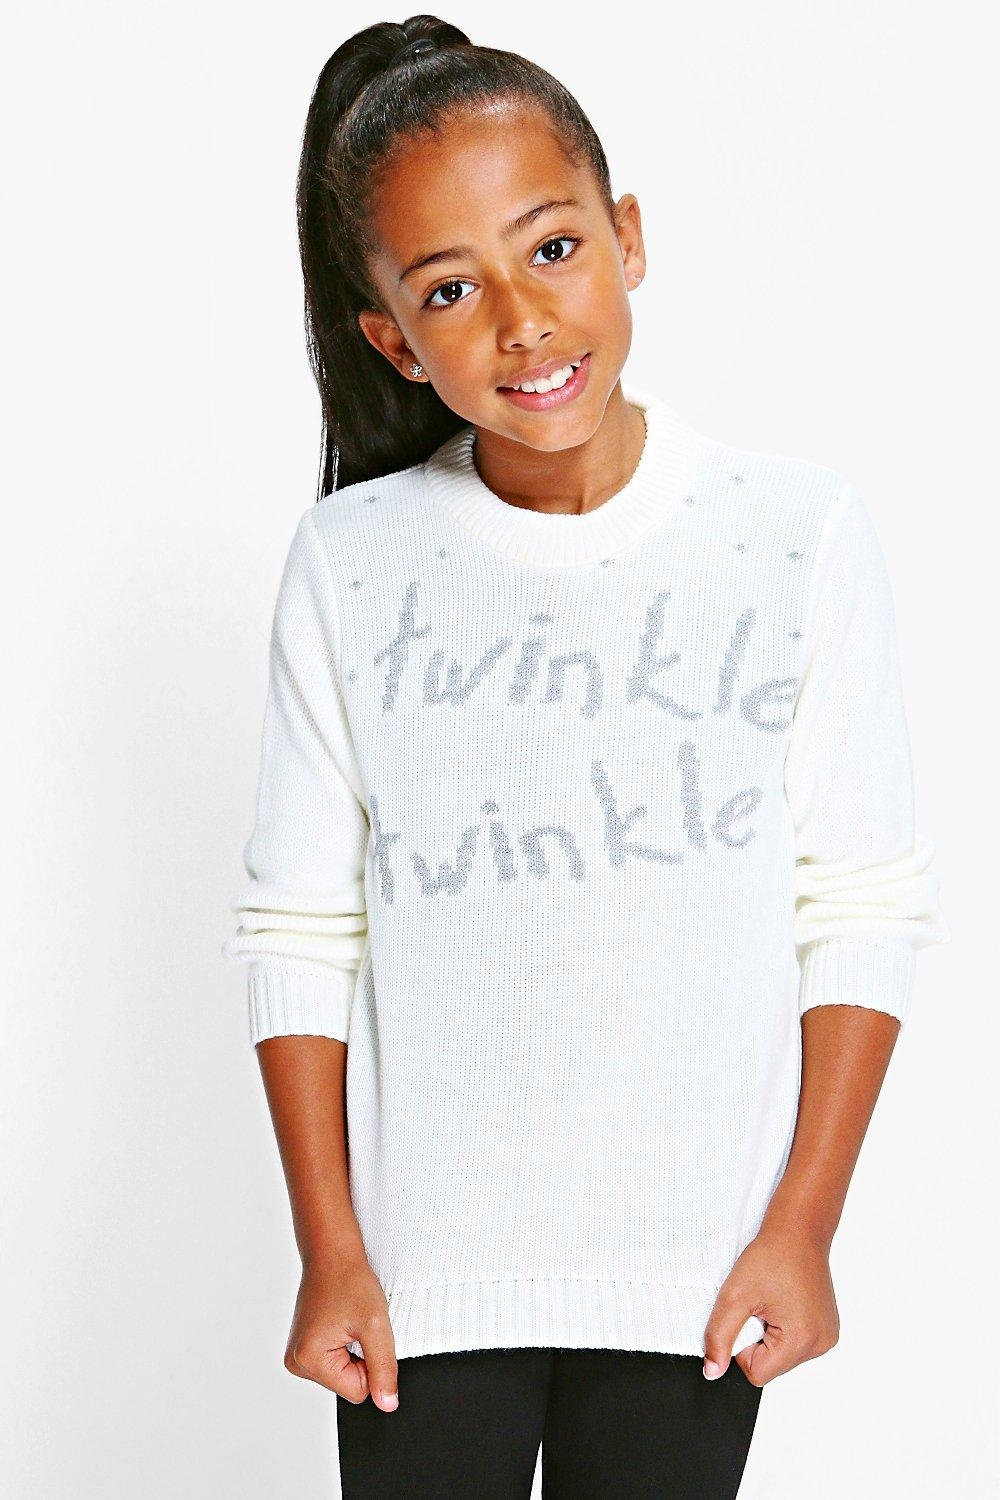 Girls Twinkle Twinkle Christmas Jumpers